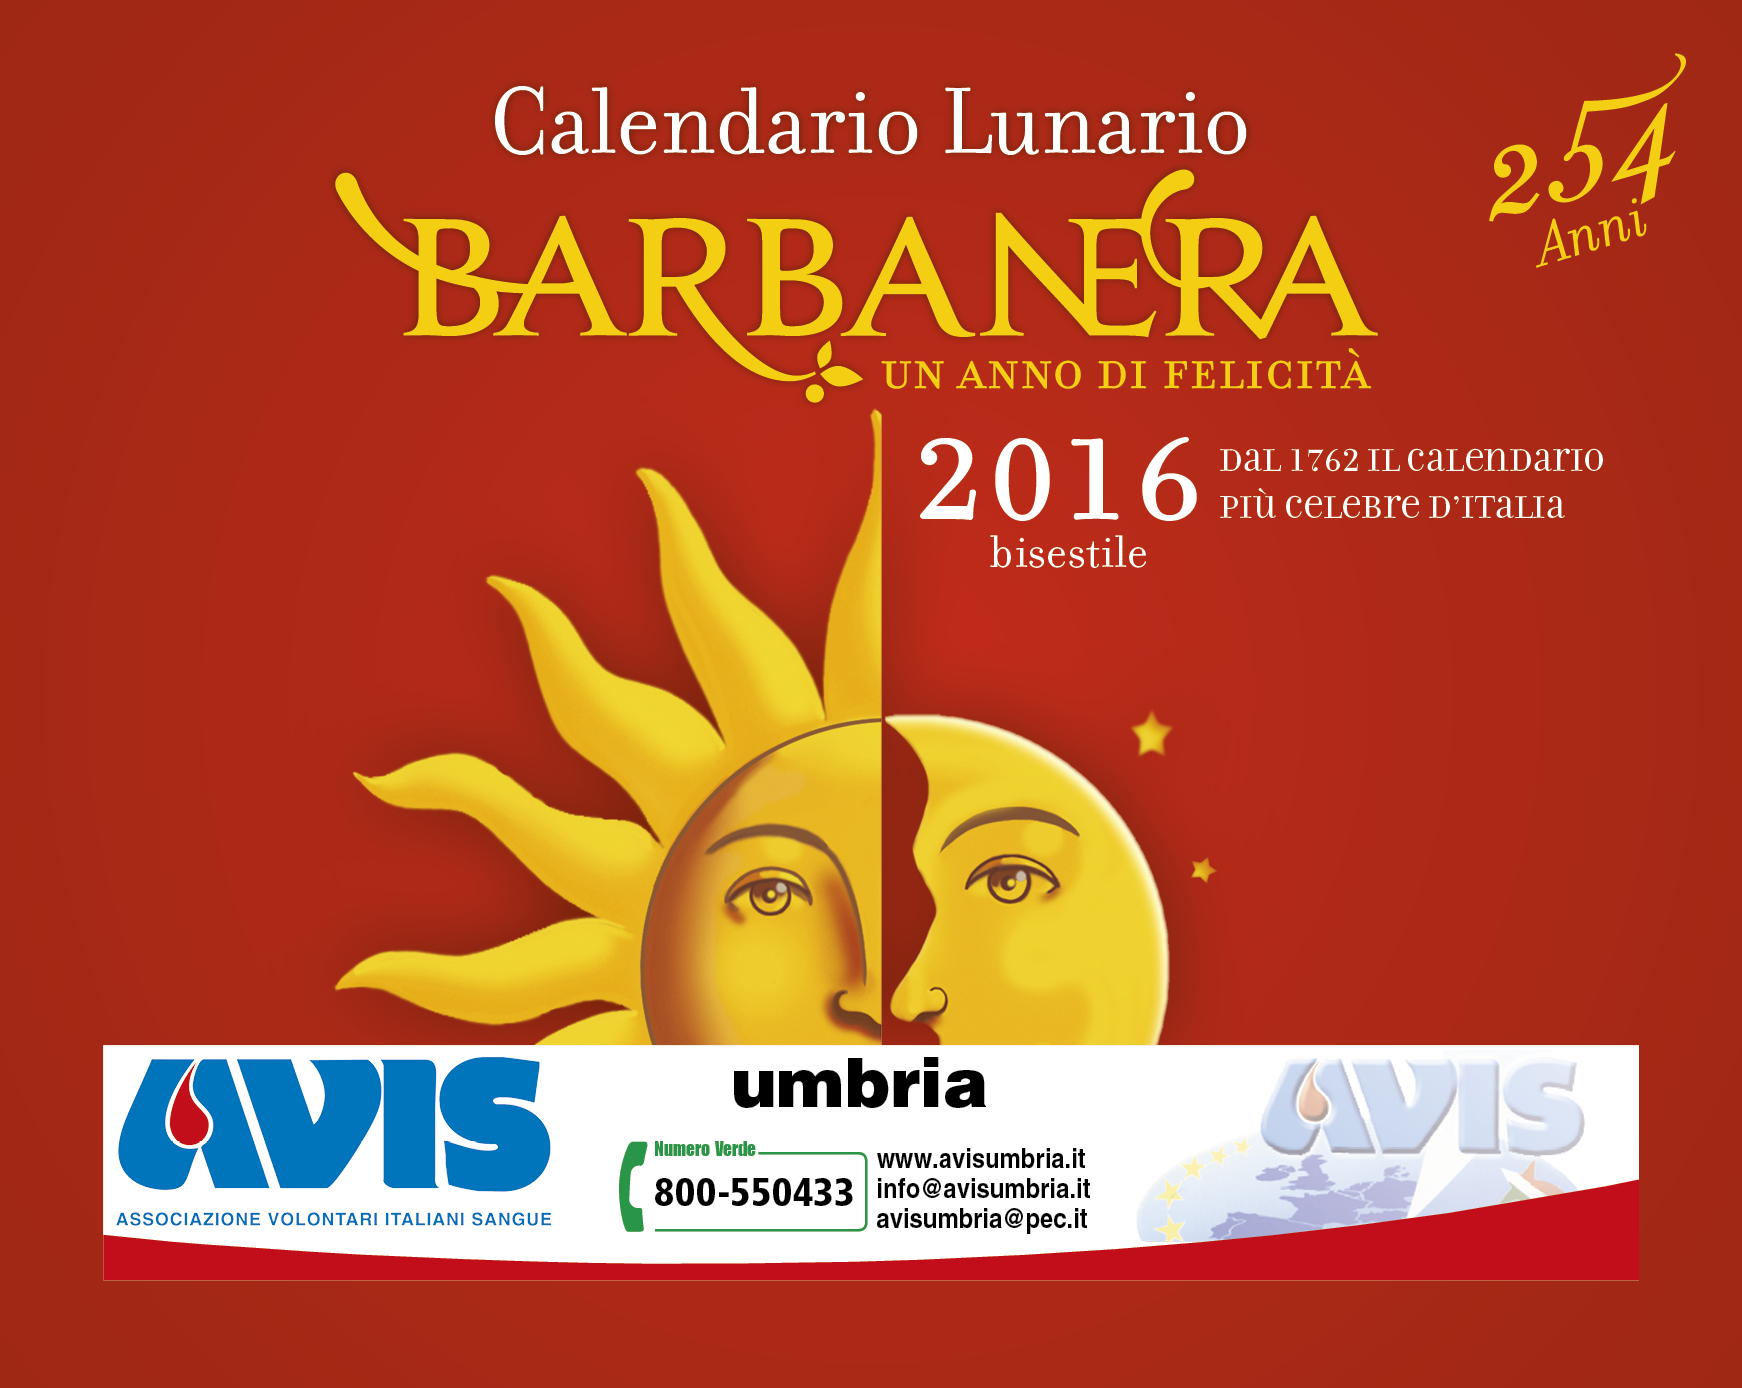 barbanera AVIS 2016